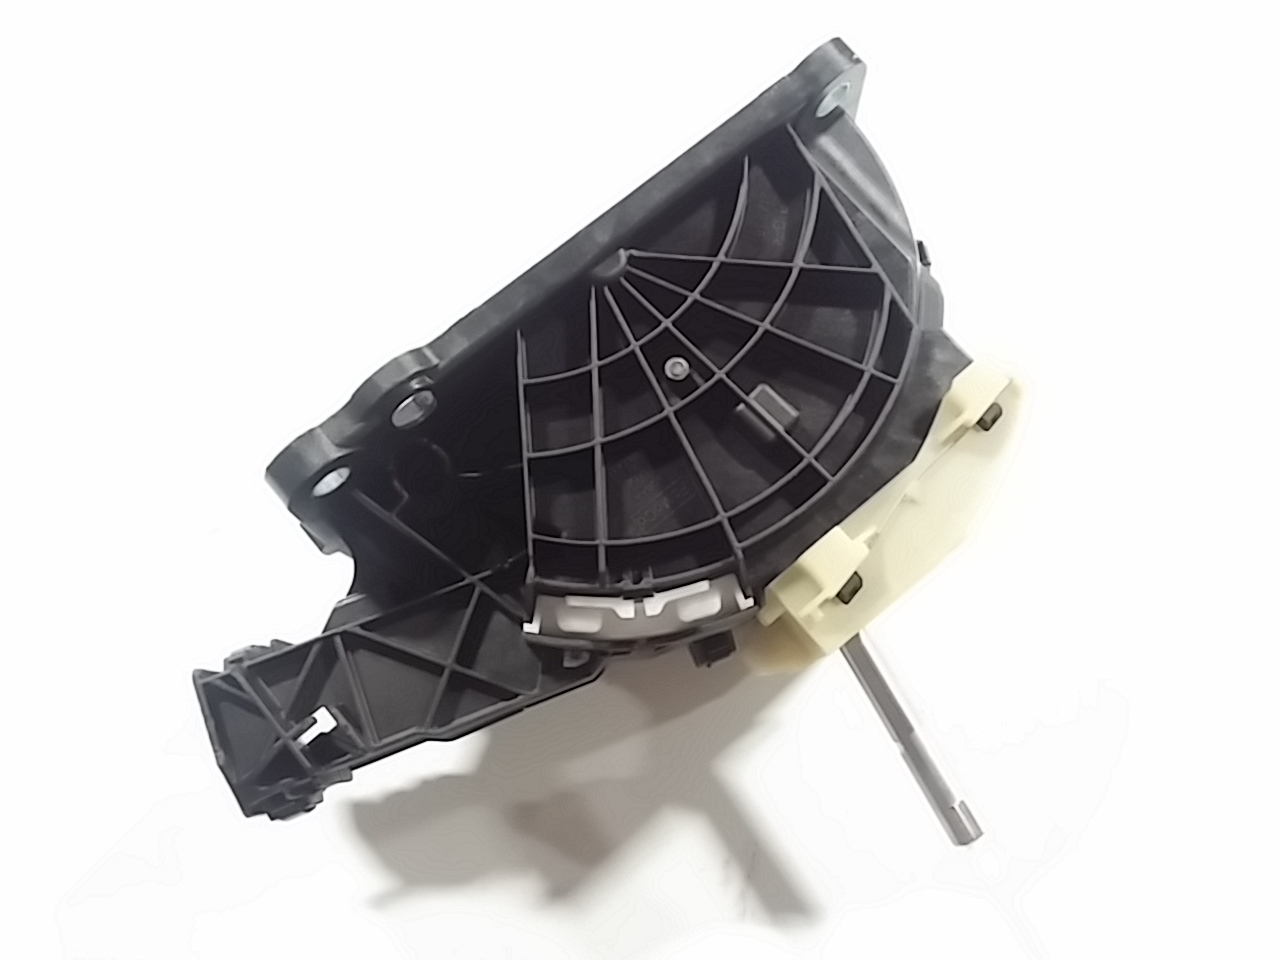 volvo xc70 housing gear compartment selector 31256036. Black Bedroom Furniture Sets. Home Design Ideas